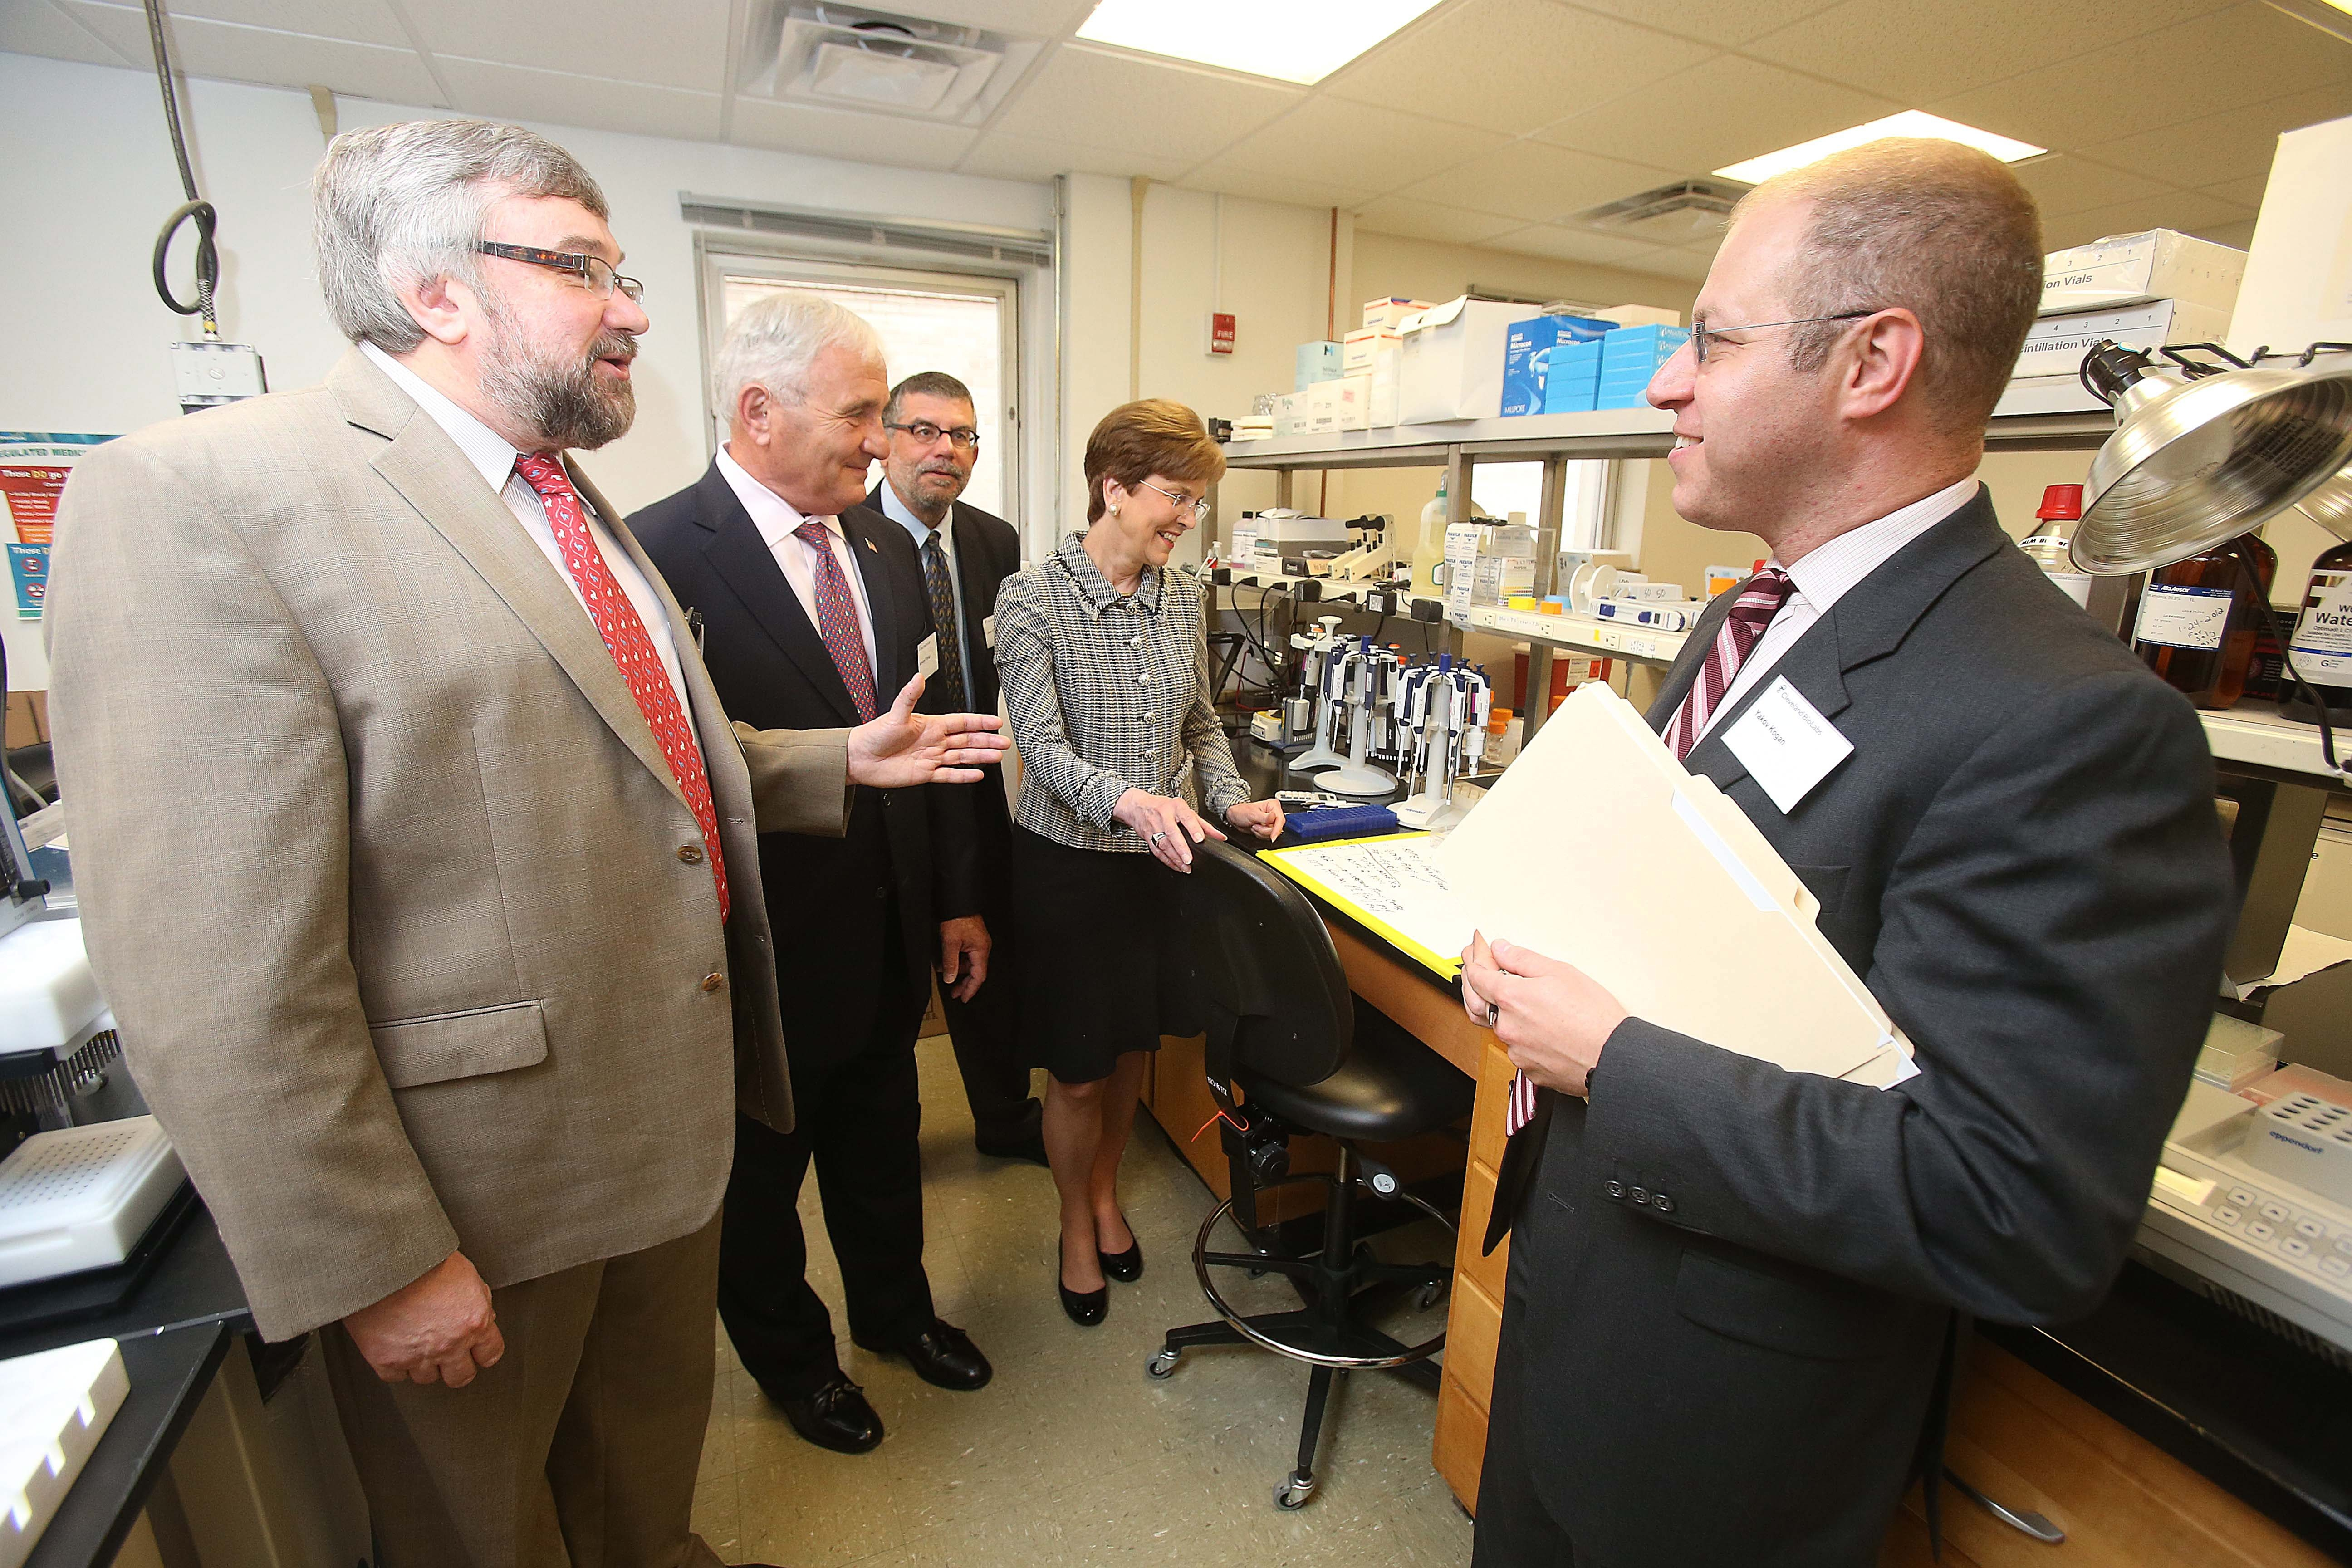 From left, Andrei Gudkov, chief science officer; Anthony J. Principi, director; Jean Viallet, chief development officer; Julia R. Brown, director; and Yakov Kogan, CEO, tour one of the labs at Cleveland BioLabs in Buffalo on Friday.